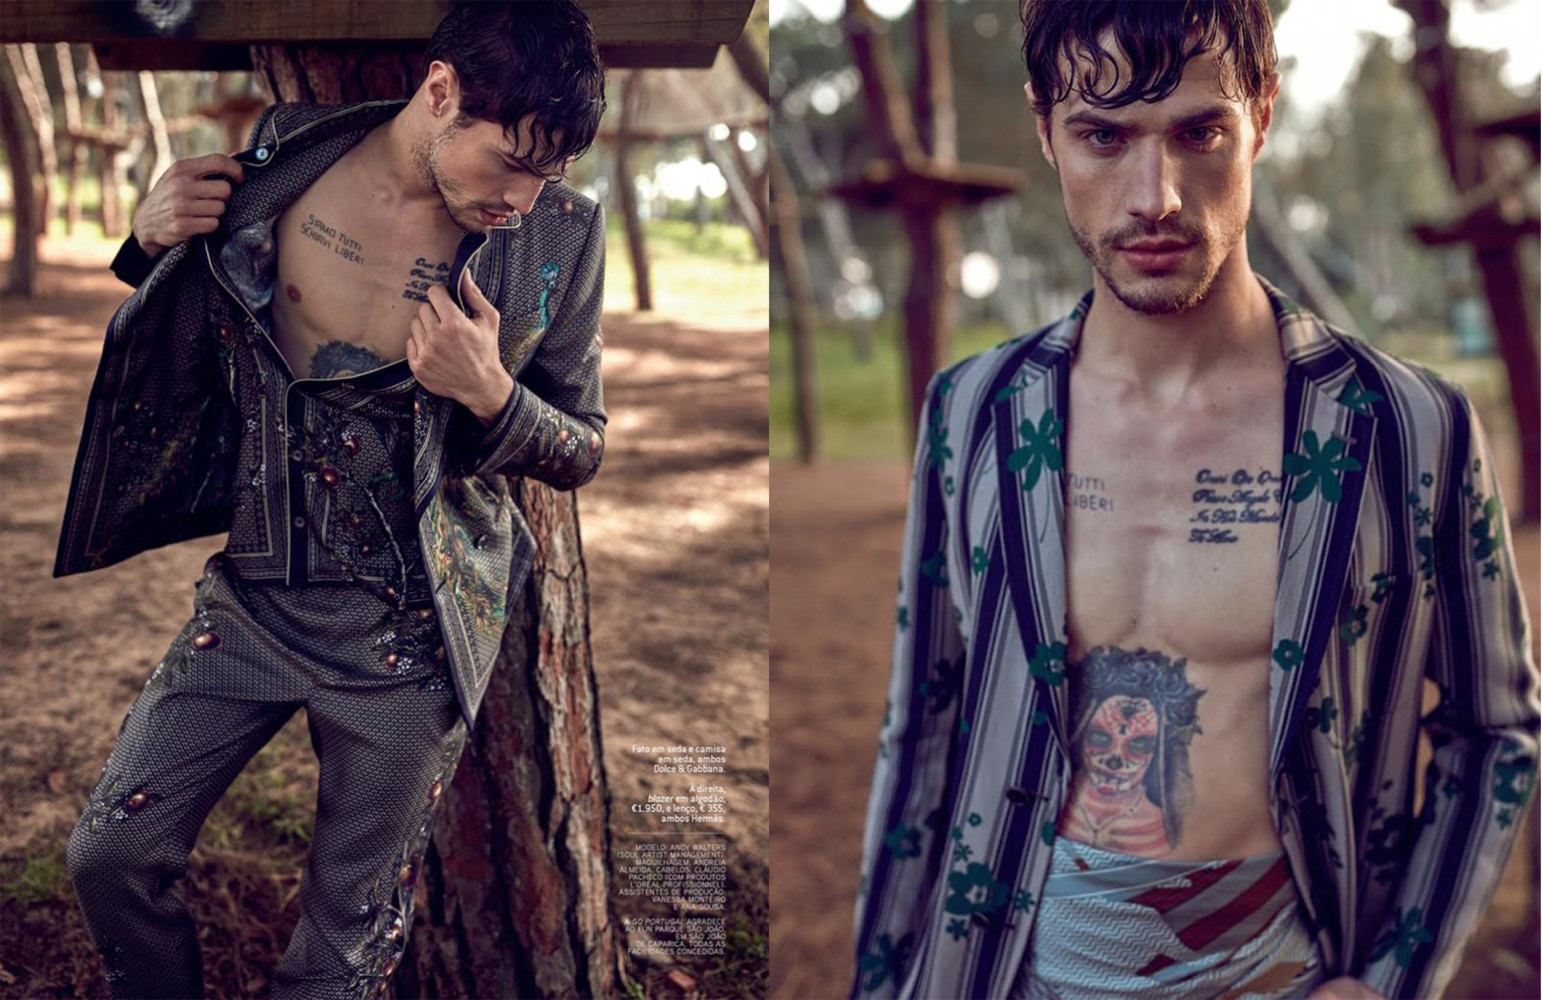 Andy Walters for GQ Portugal